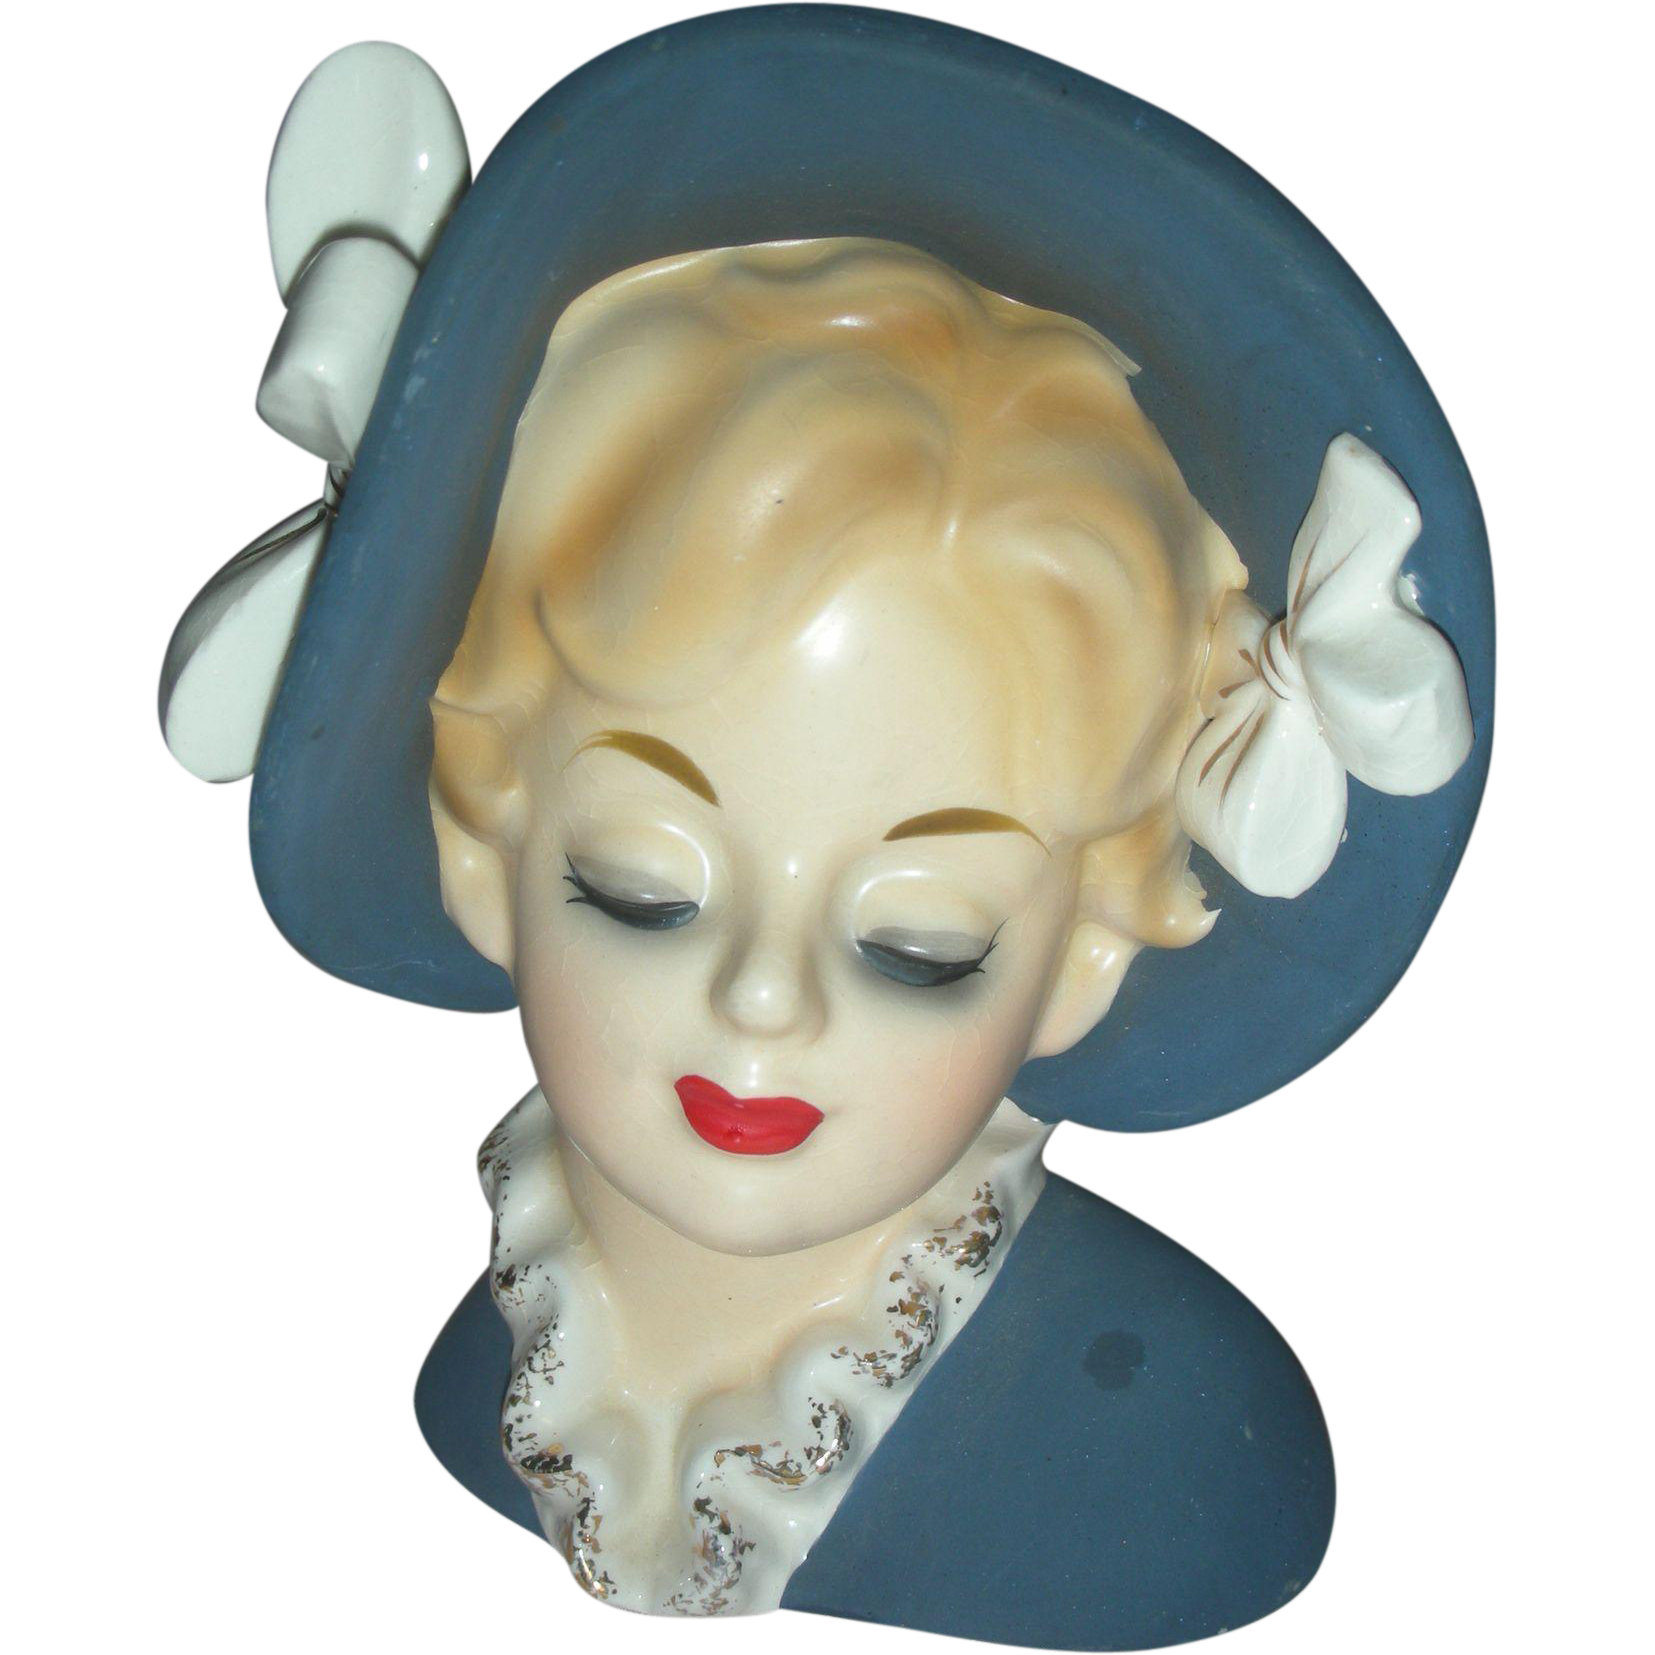 Beautiful Vintage Lady Headvase Head Vase Planter